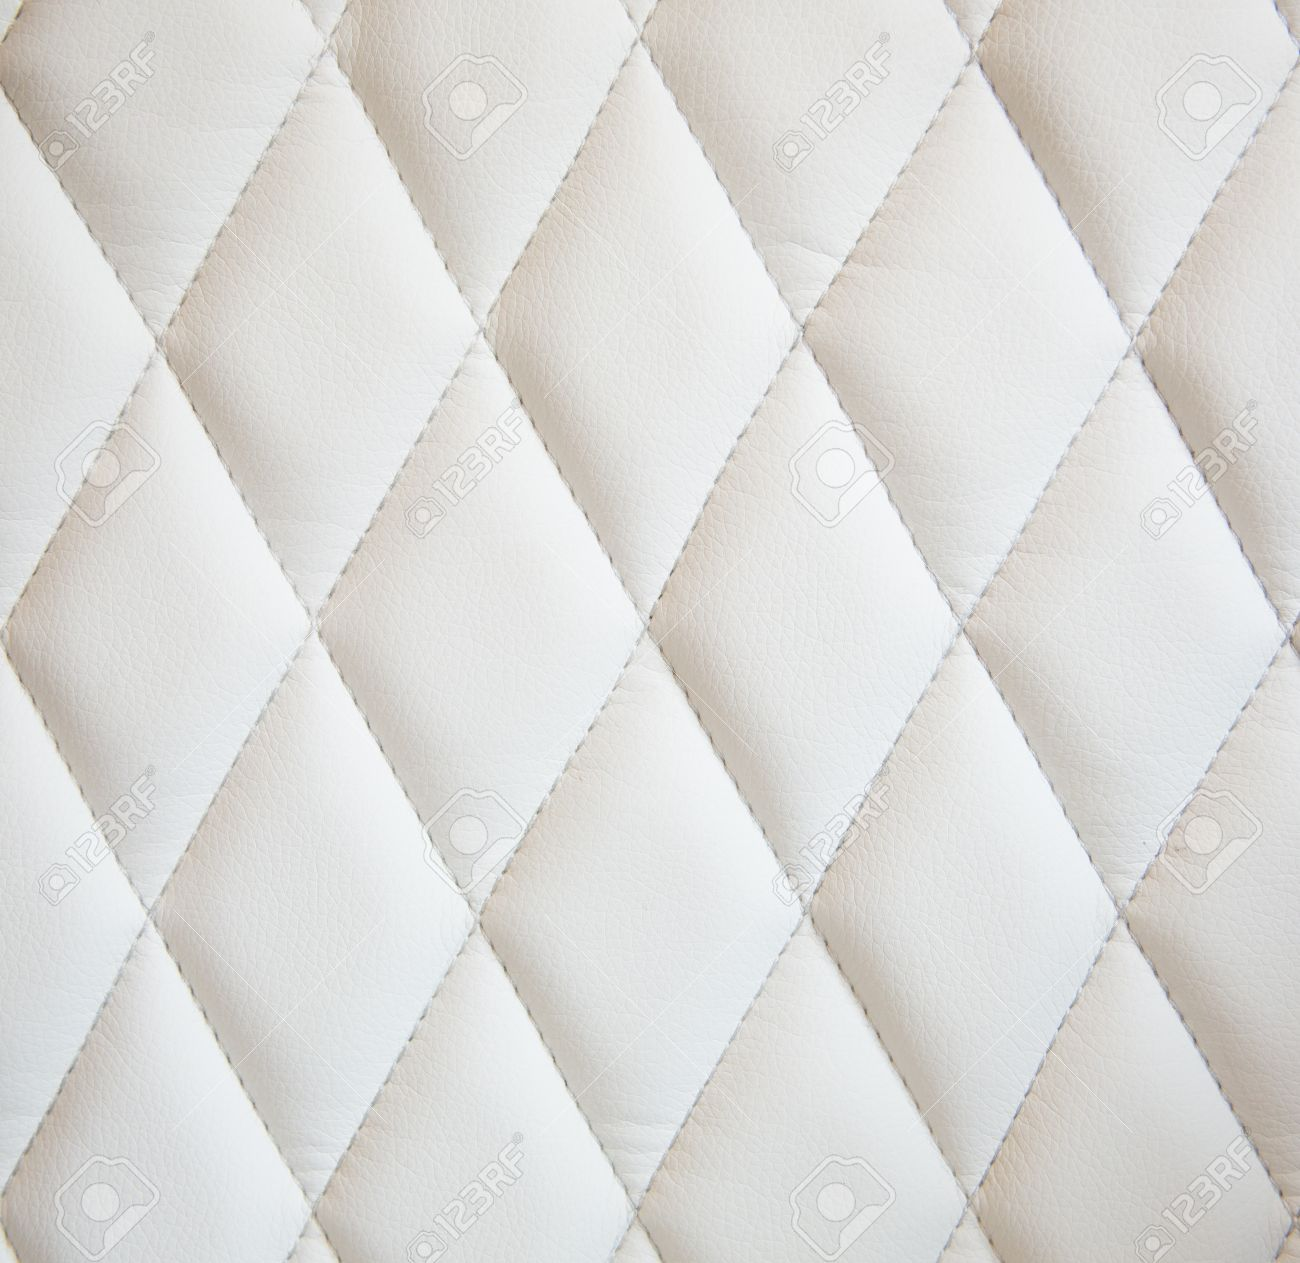 White Sofa Texture Stock Photo Picture And Royalty Free Image